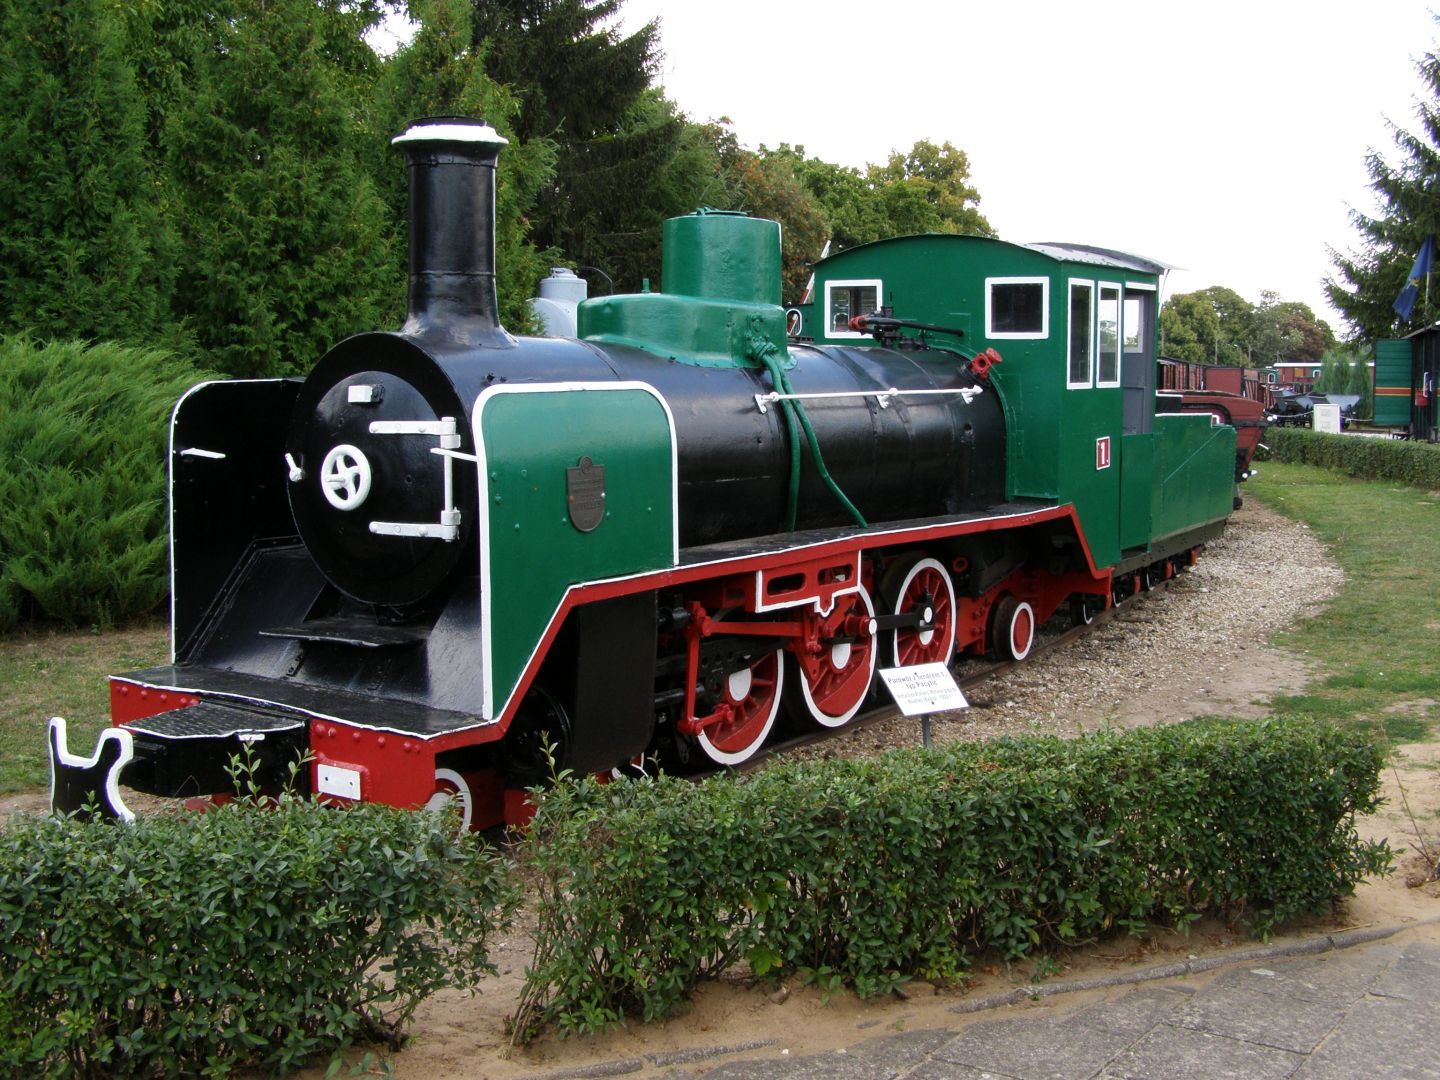 Steam locomotive with leader